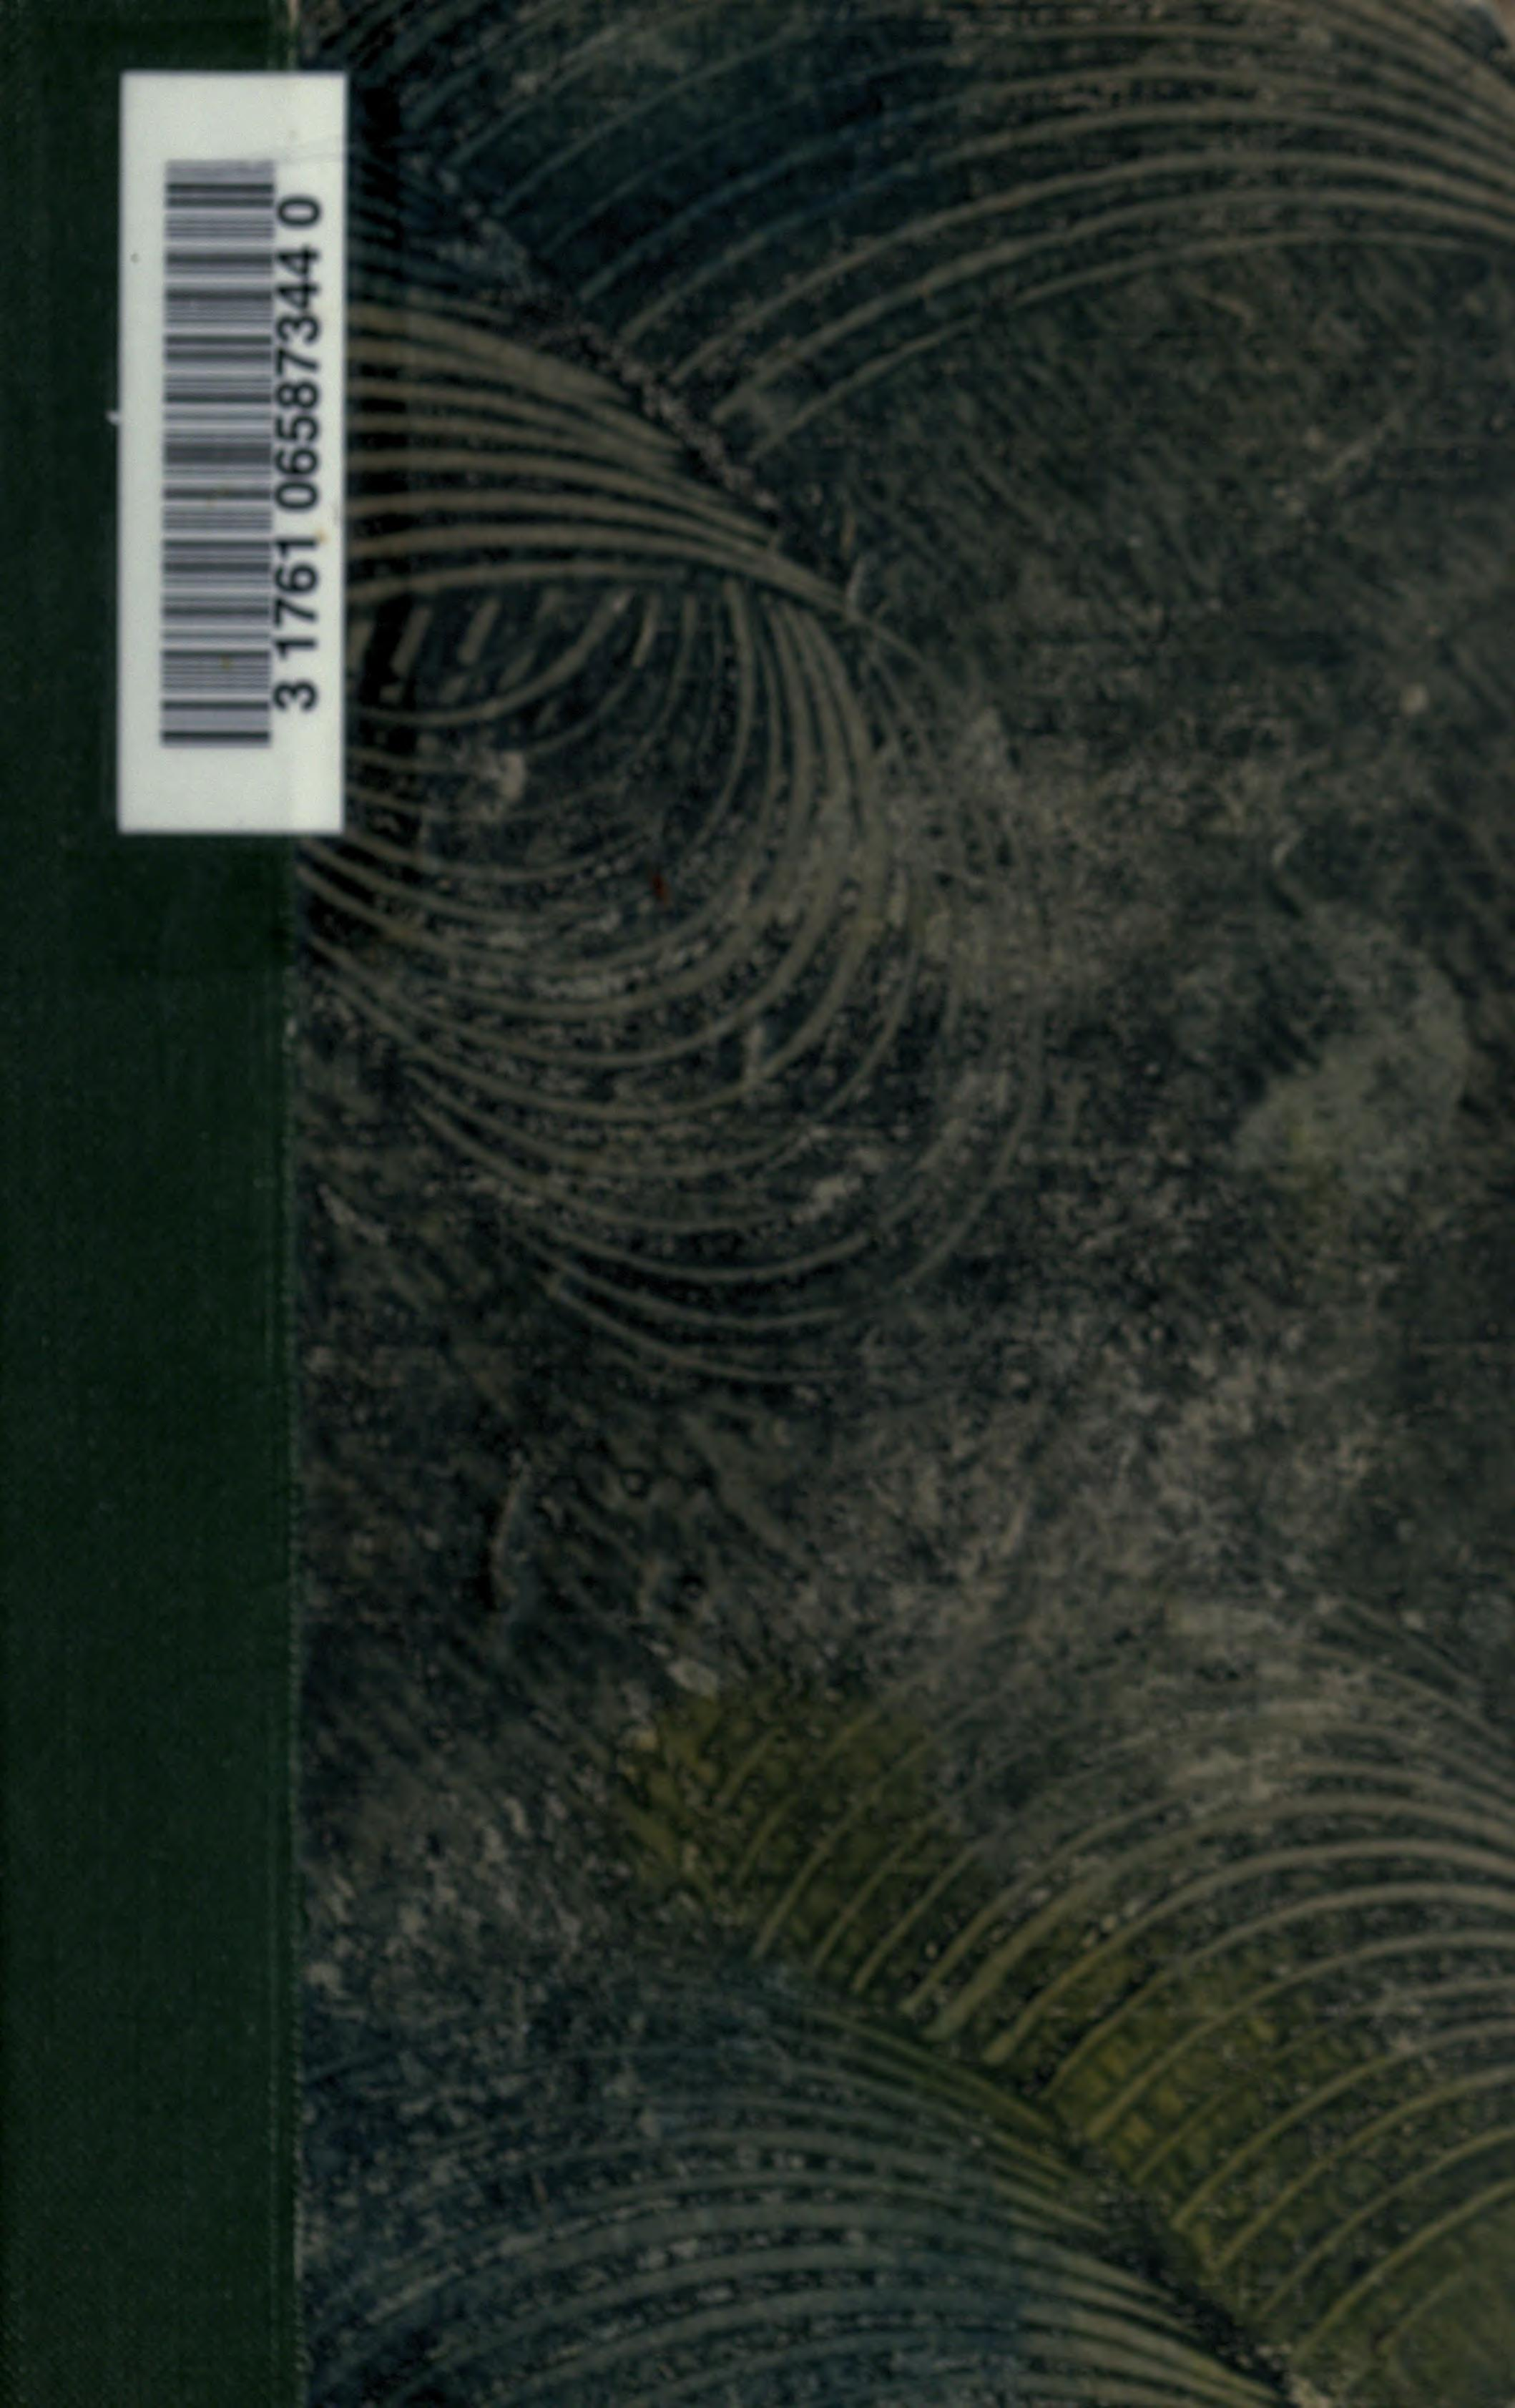 Salammbô Flaubert Gustave 1821 1880 Free Download Borrow And Streaming Internet Archive